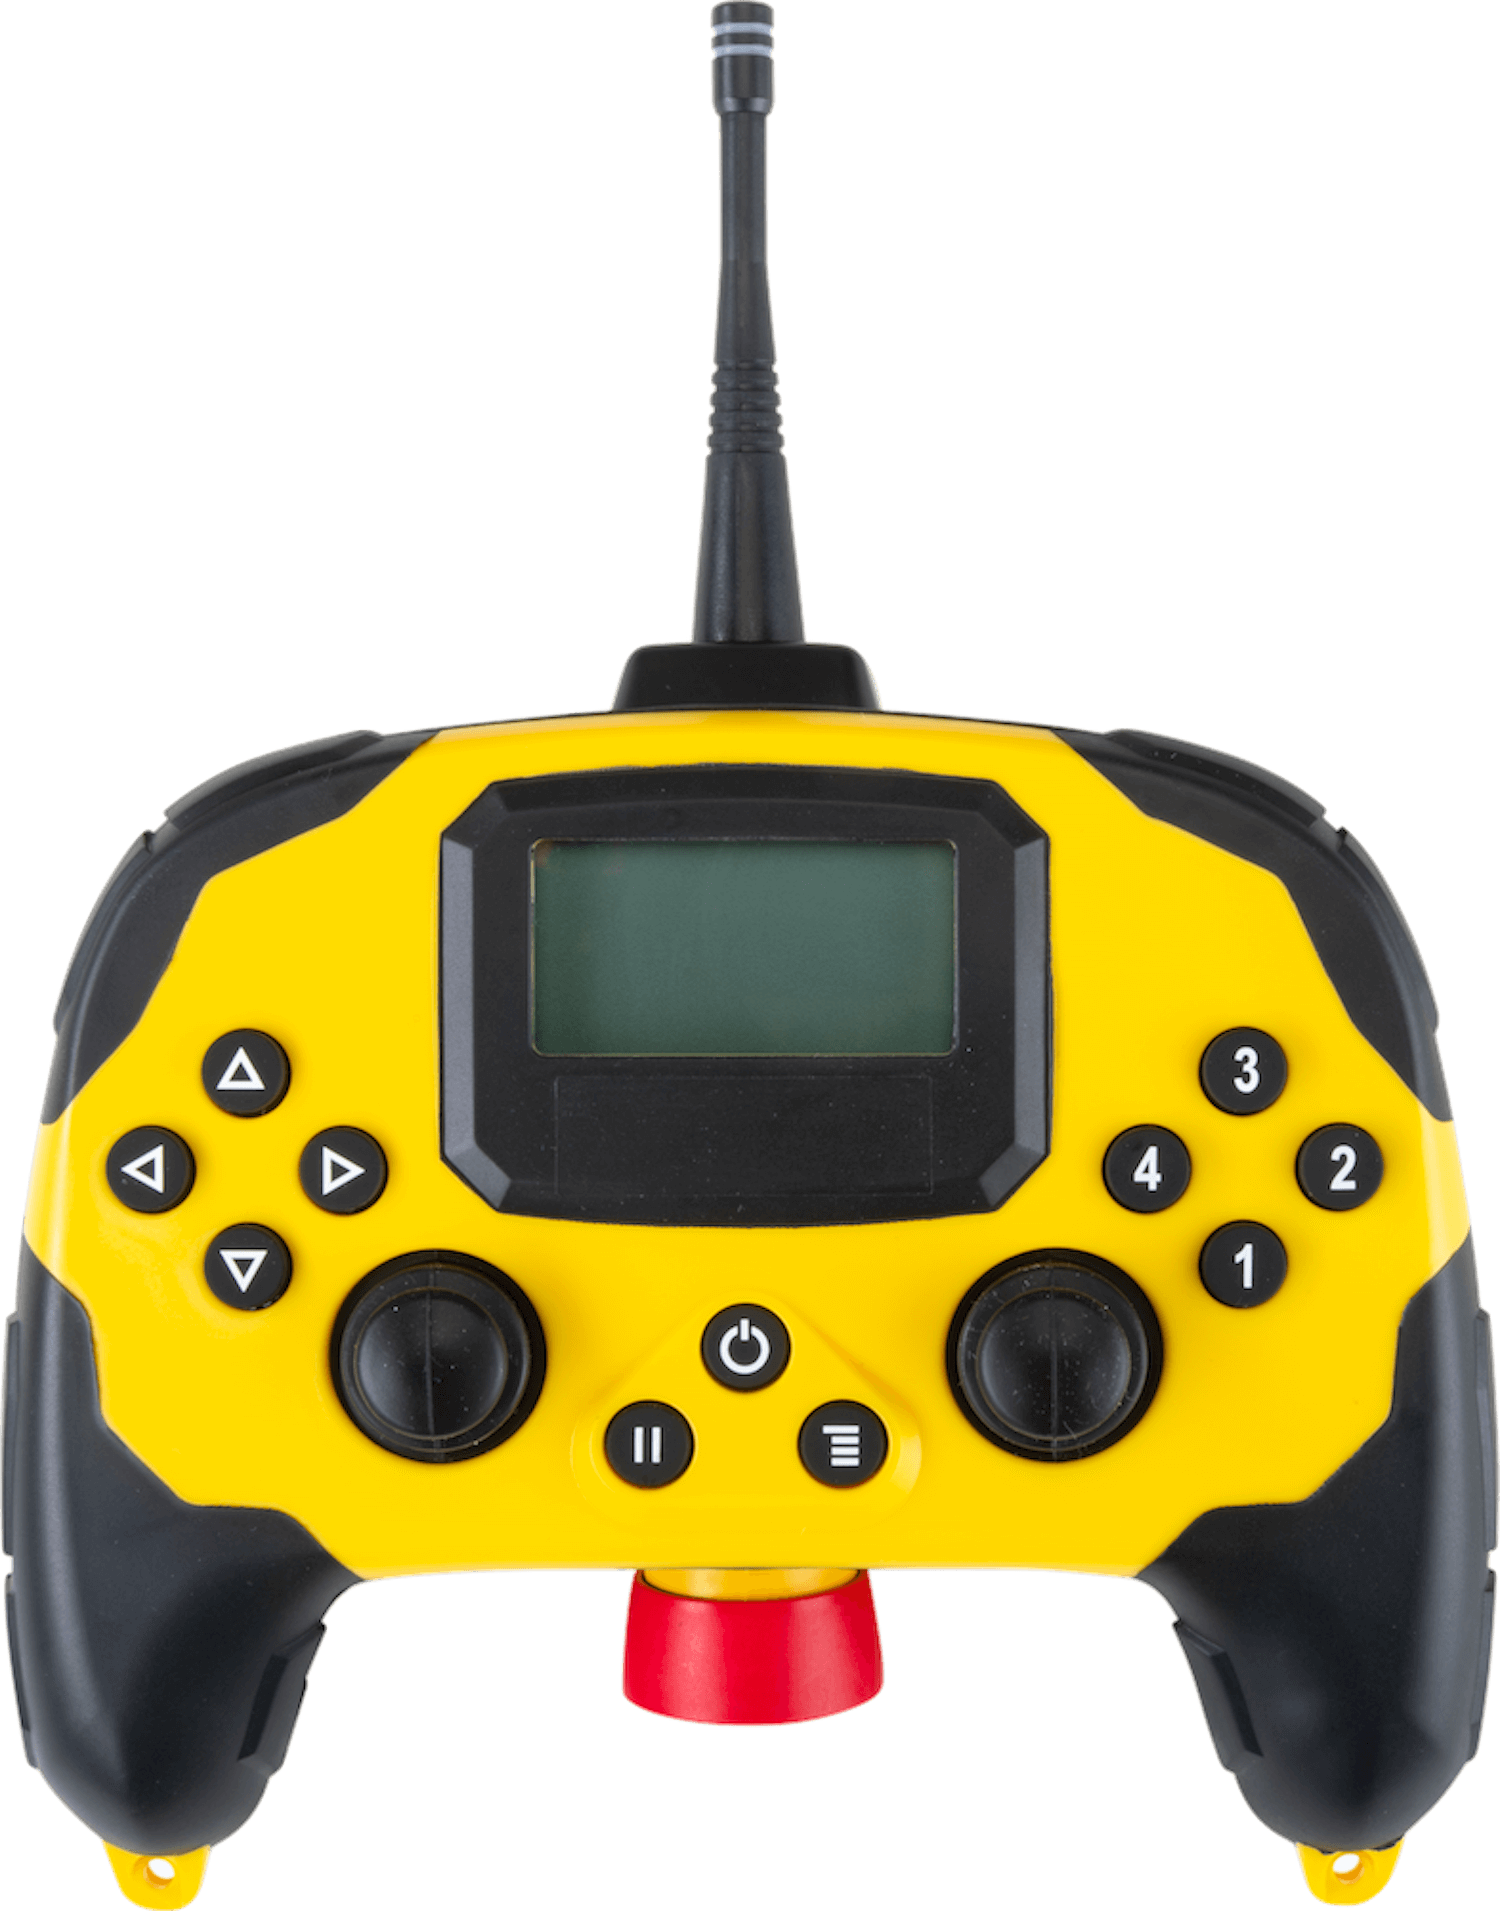 Remote Control for Heavy Equipment